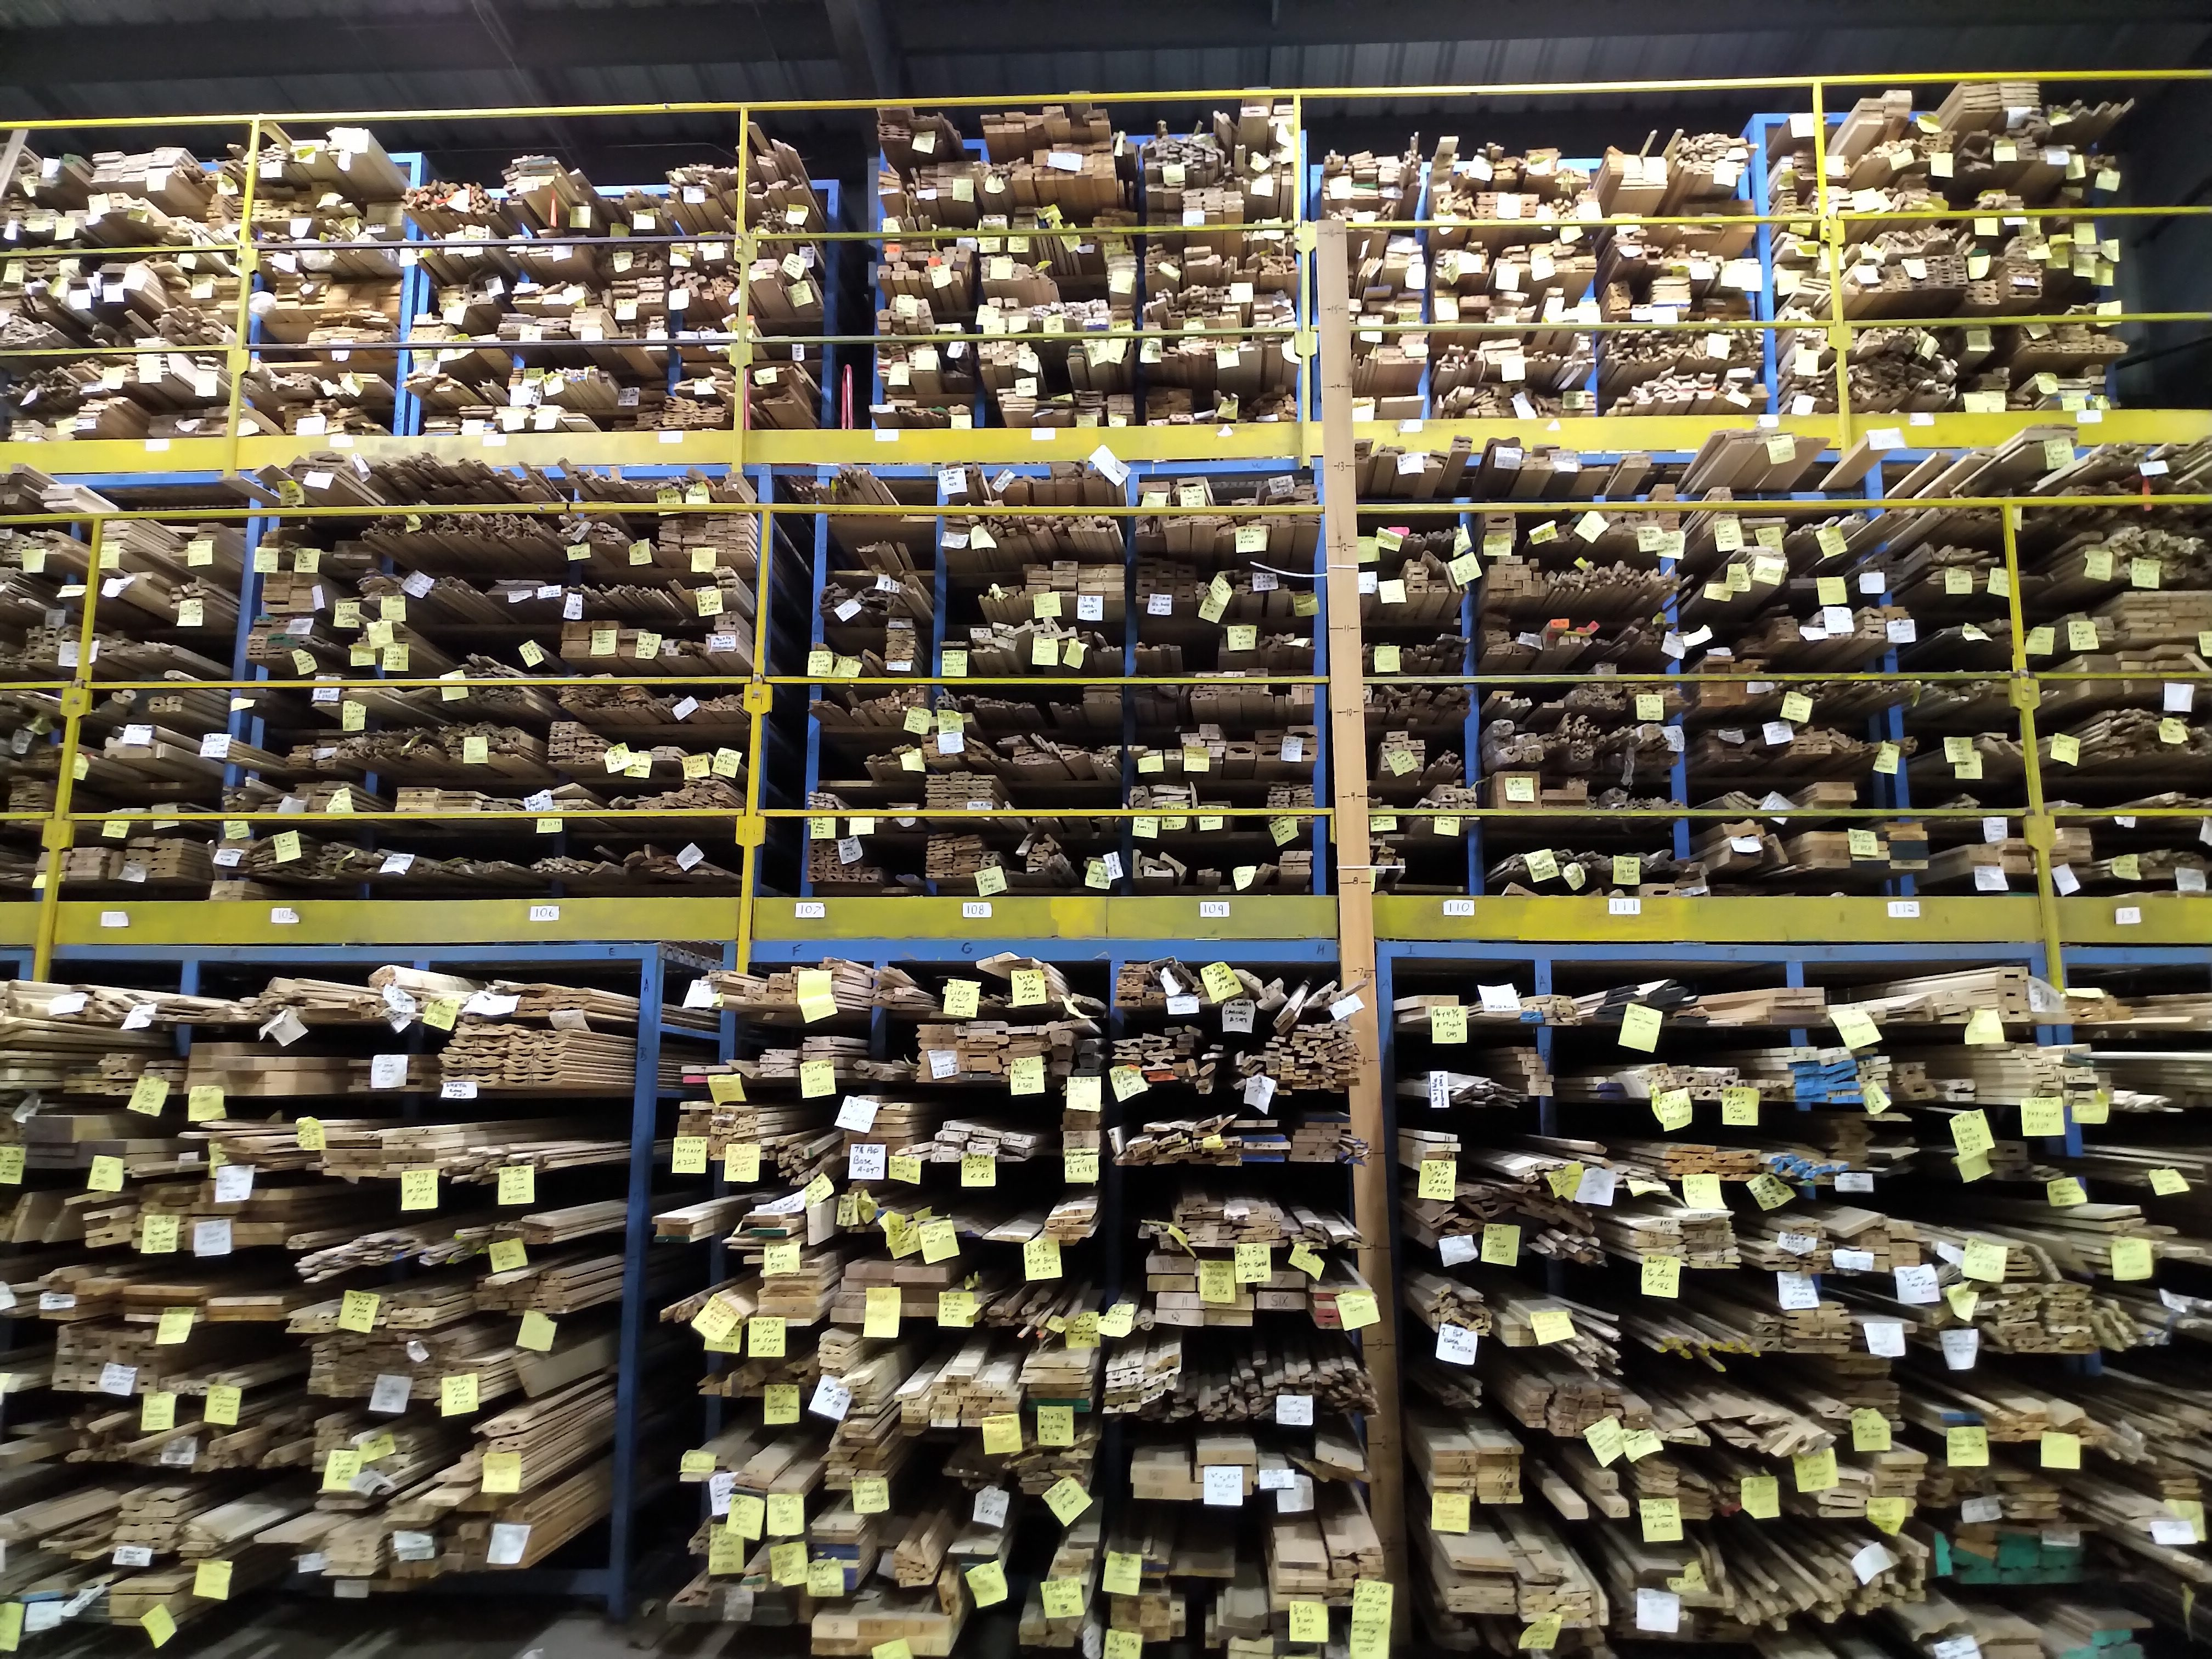 planks of wood organized by size and colour with yellow tags on the end. The wood is filled into cubbys.